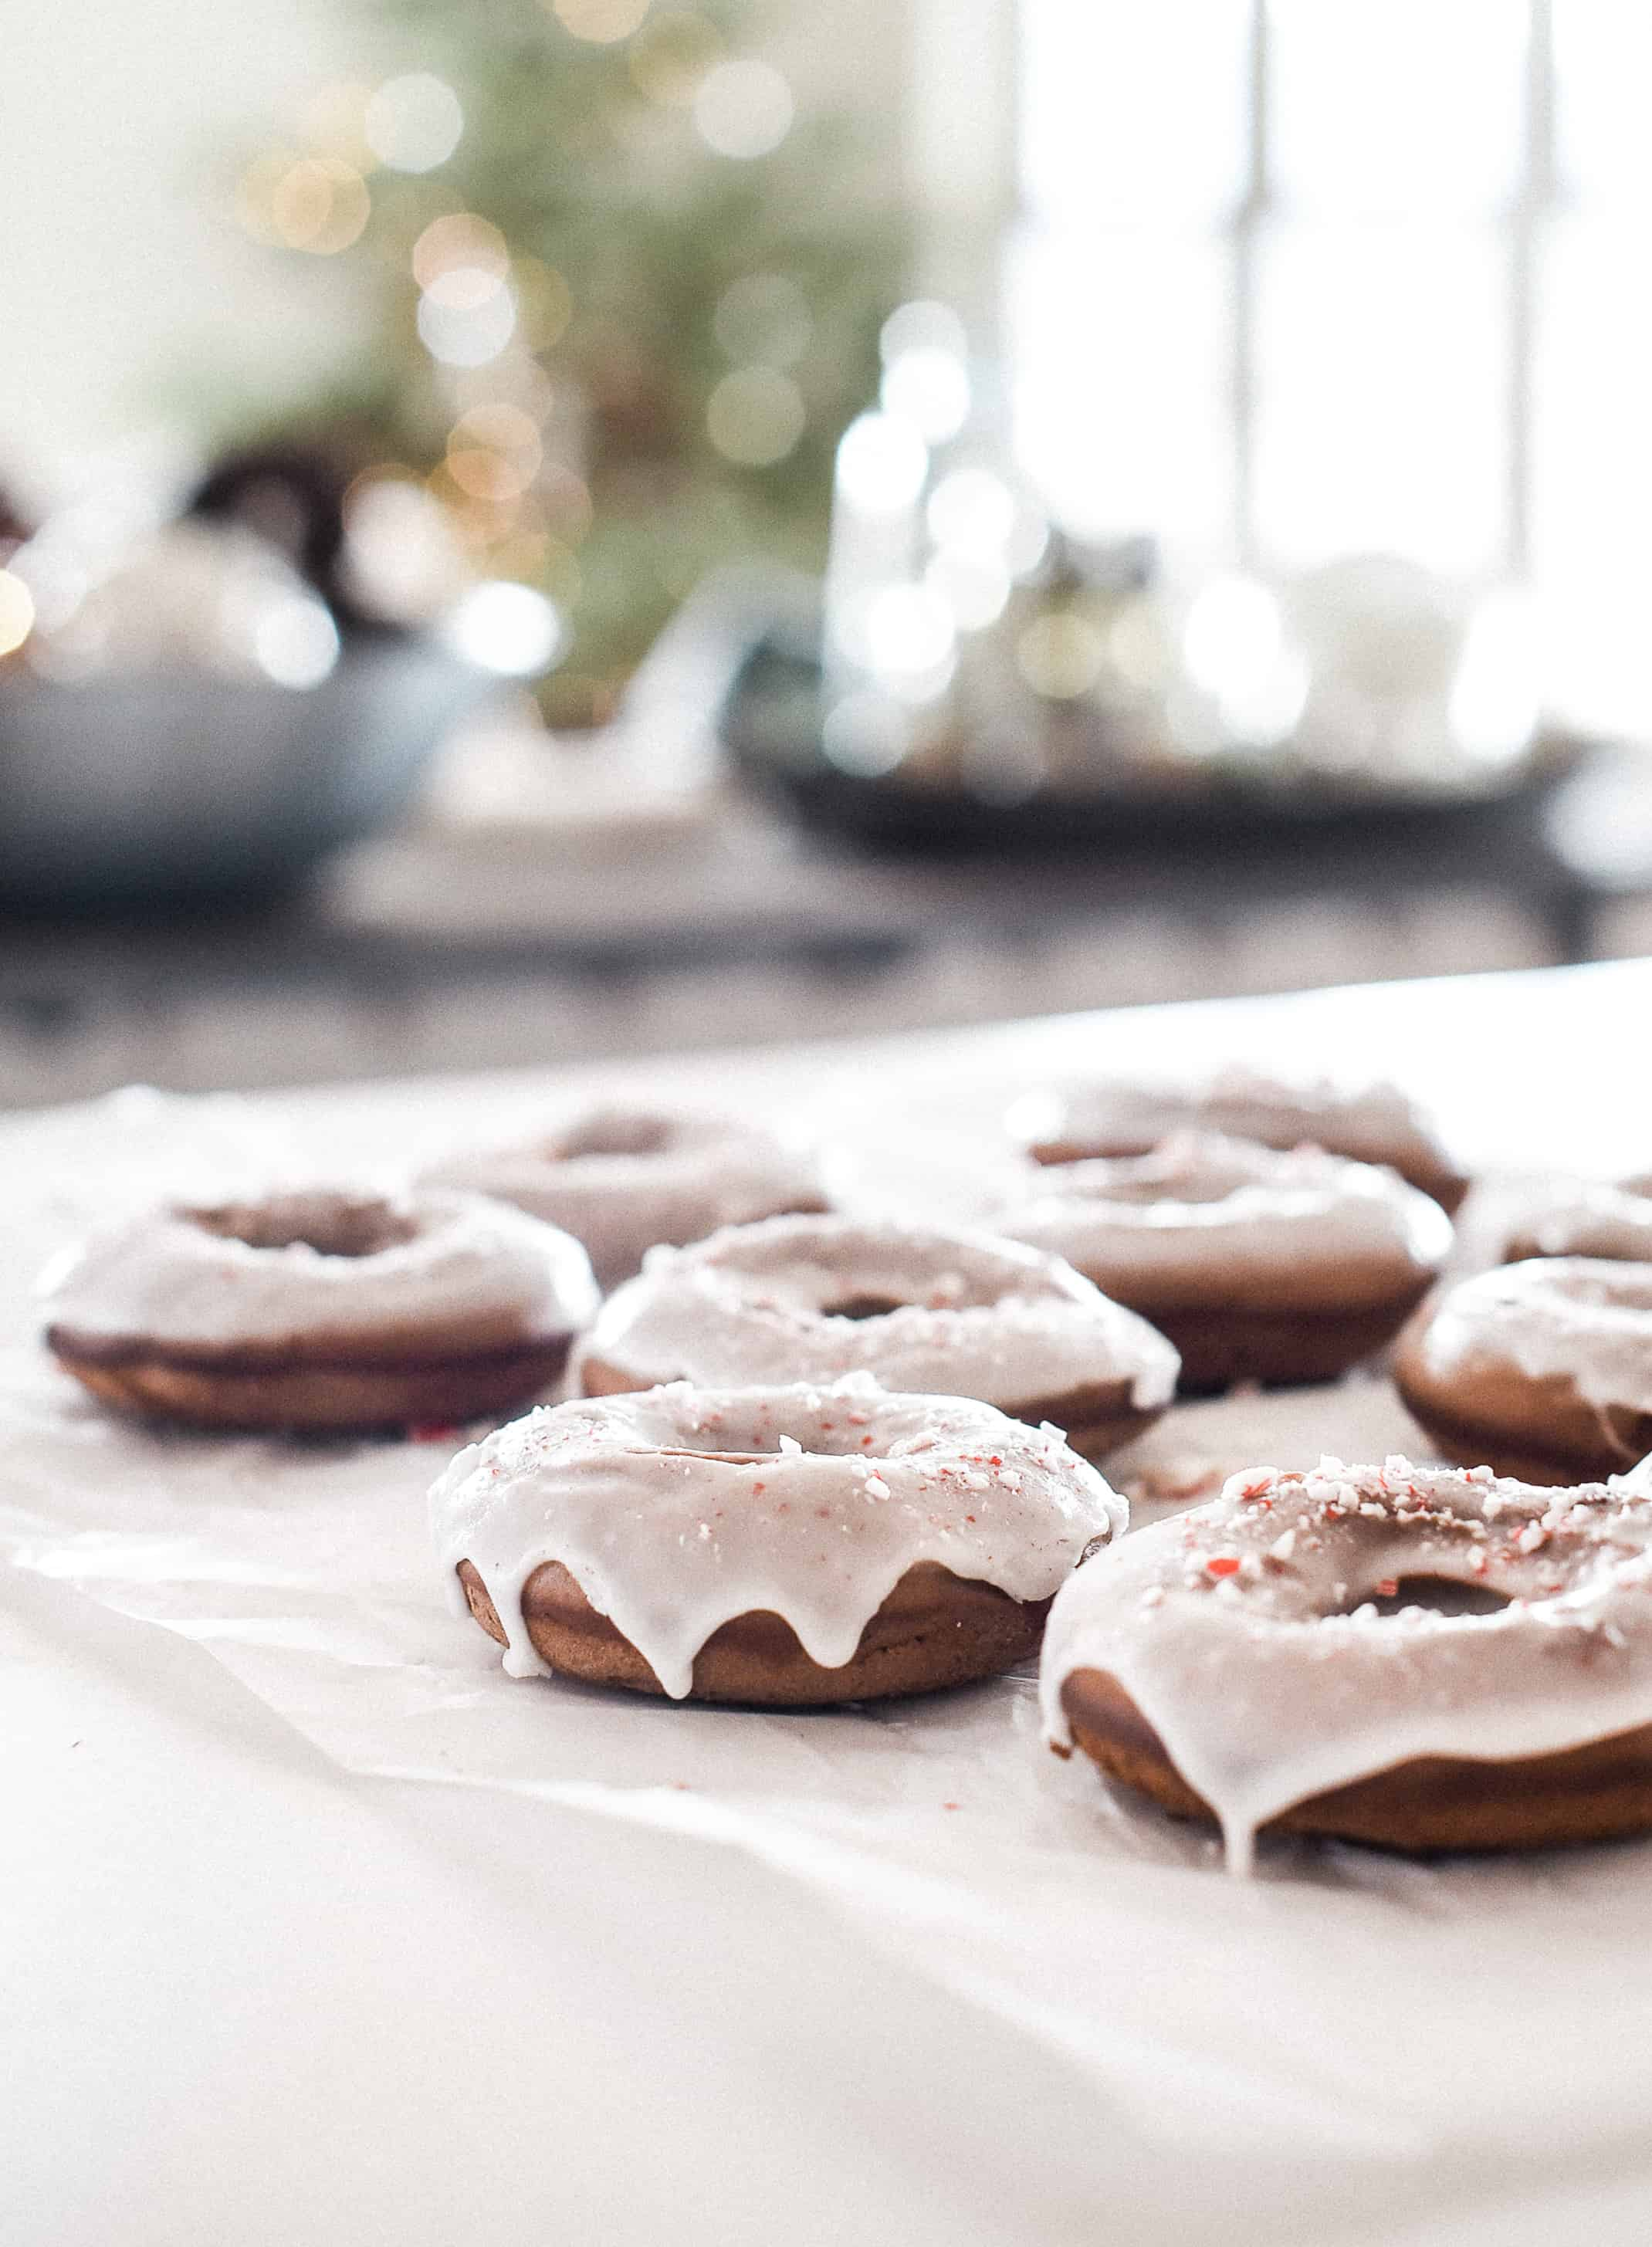 Baked peppermint bark Christmas donuts are the perfect treat to serve this holiday! These are fluffy, chocolatey, and have just the right amount of peppermint.